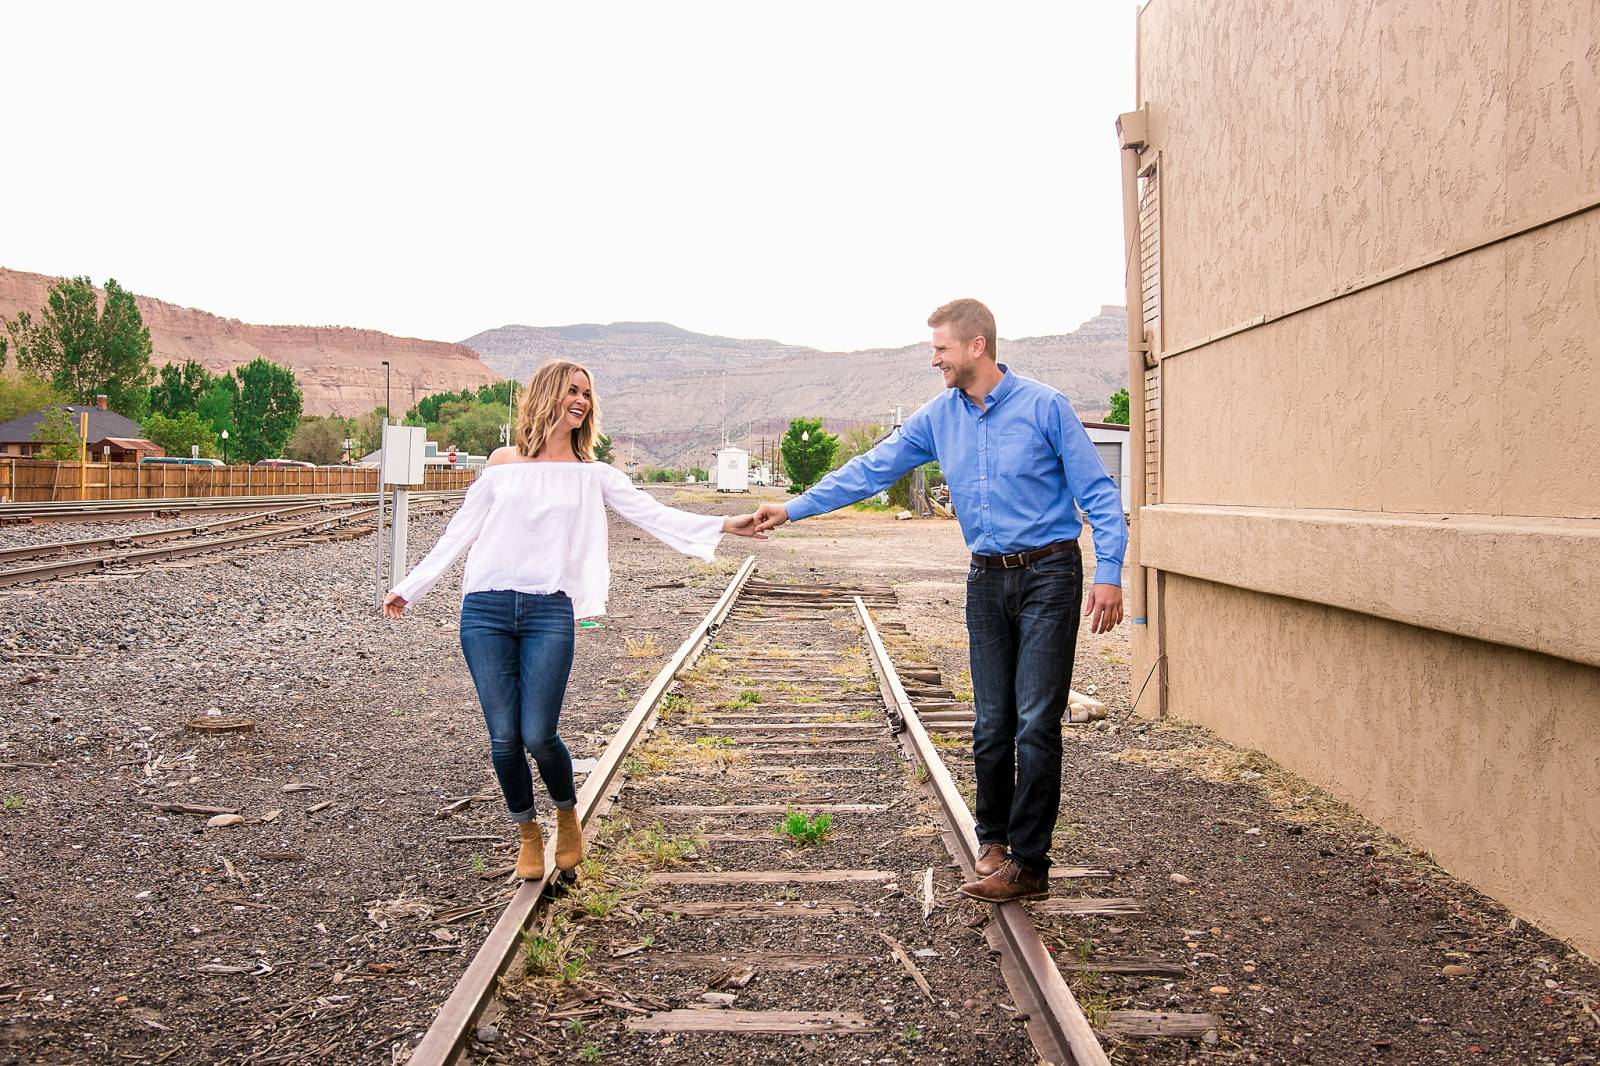 Colorado engagement photo session captured by Grand Junction Wedding Photographer, Carved Tree Photo